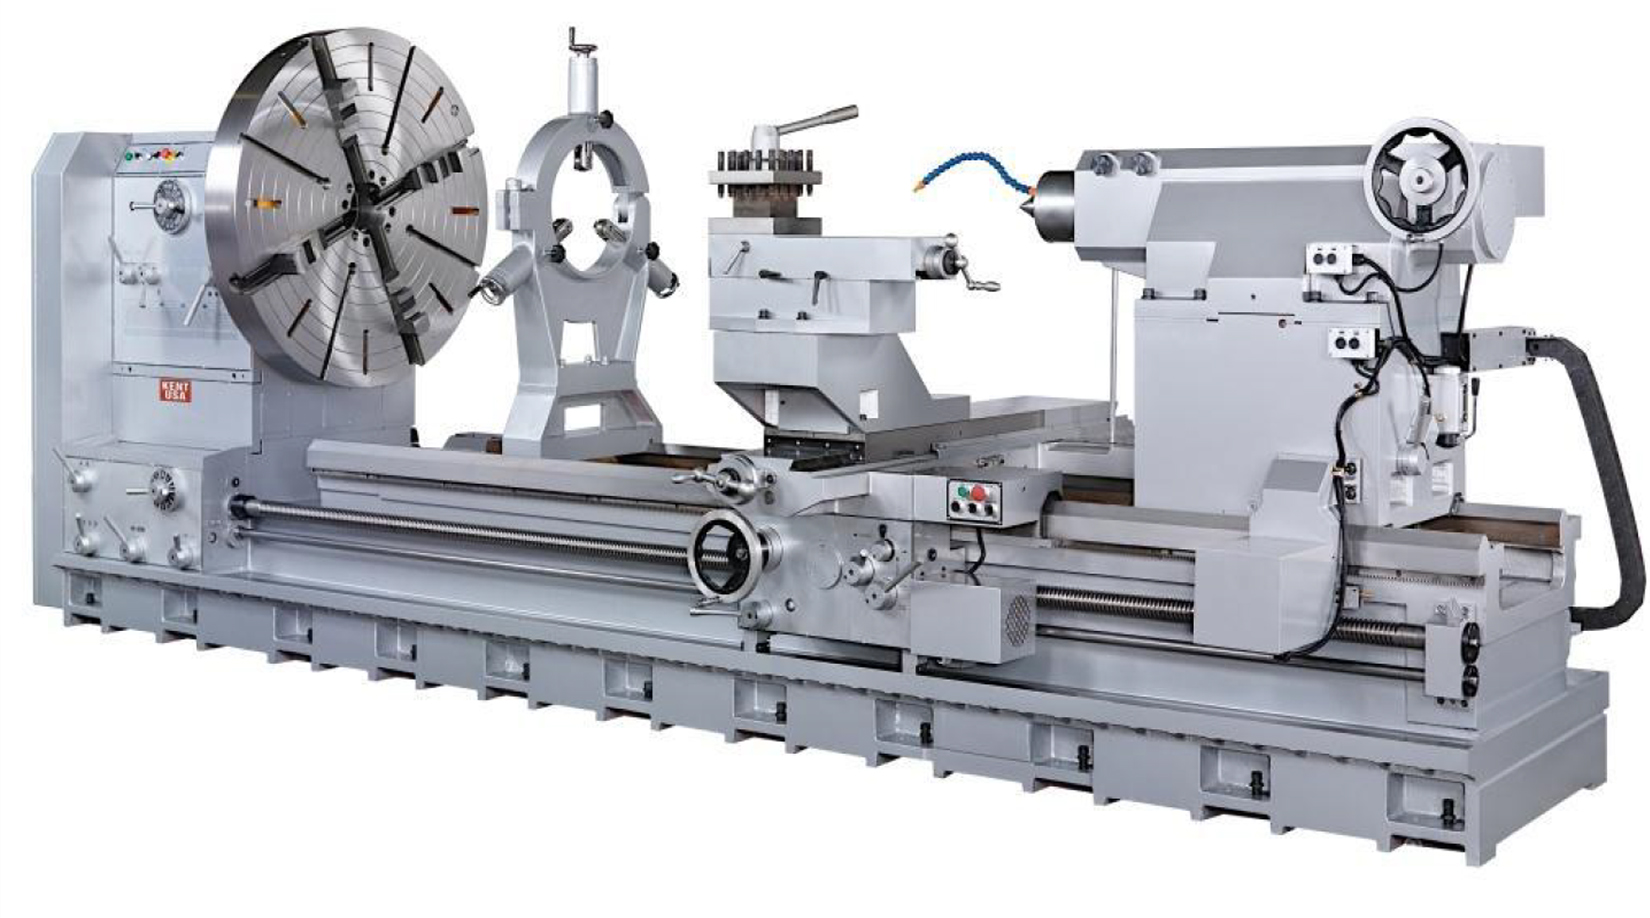 Kingston Lathes